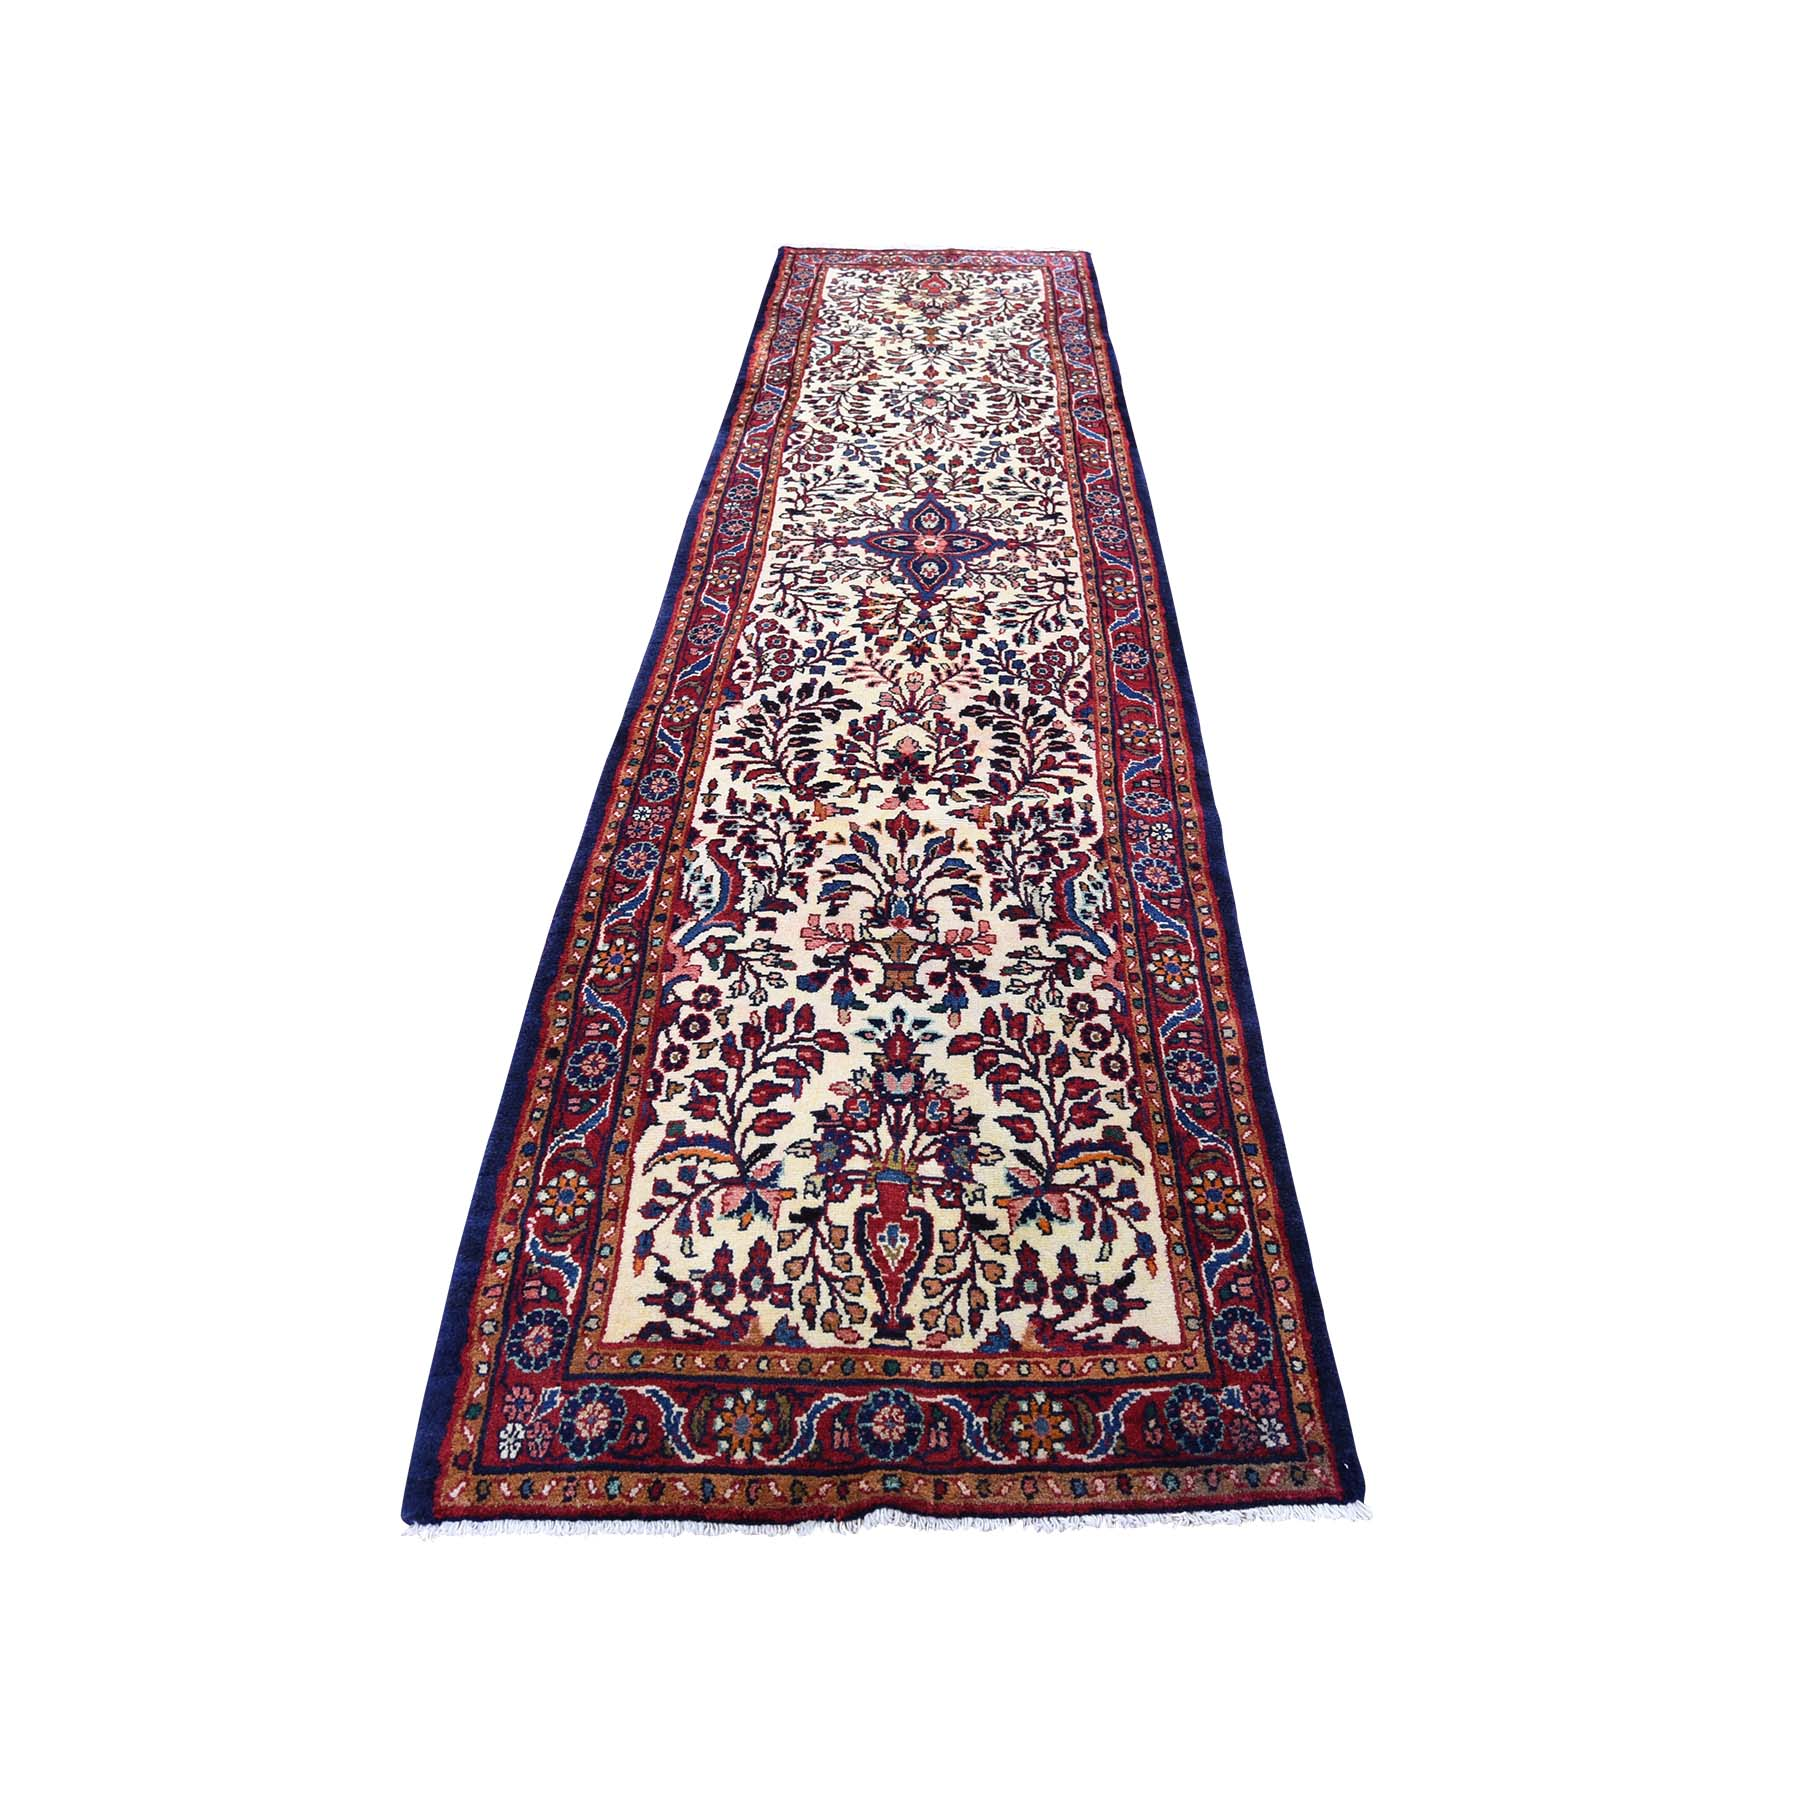 "2'8""X11' New Persian Lilihan Runner Hand-Knotted Oriental Oriental Rug moadbe80"